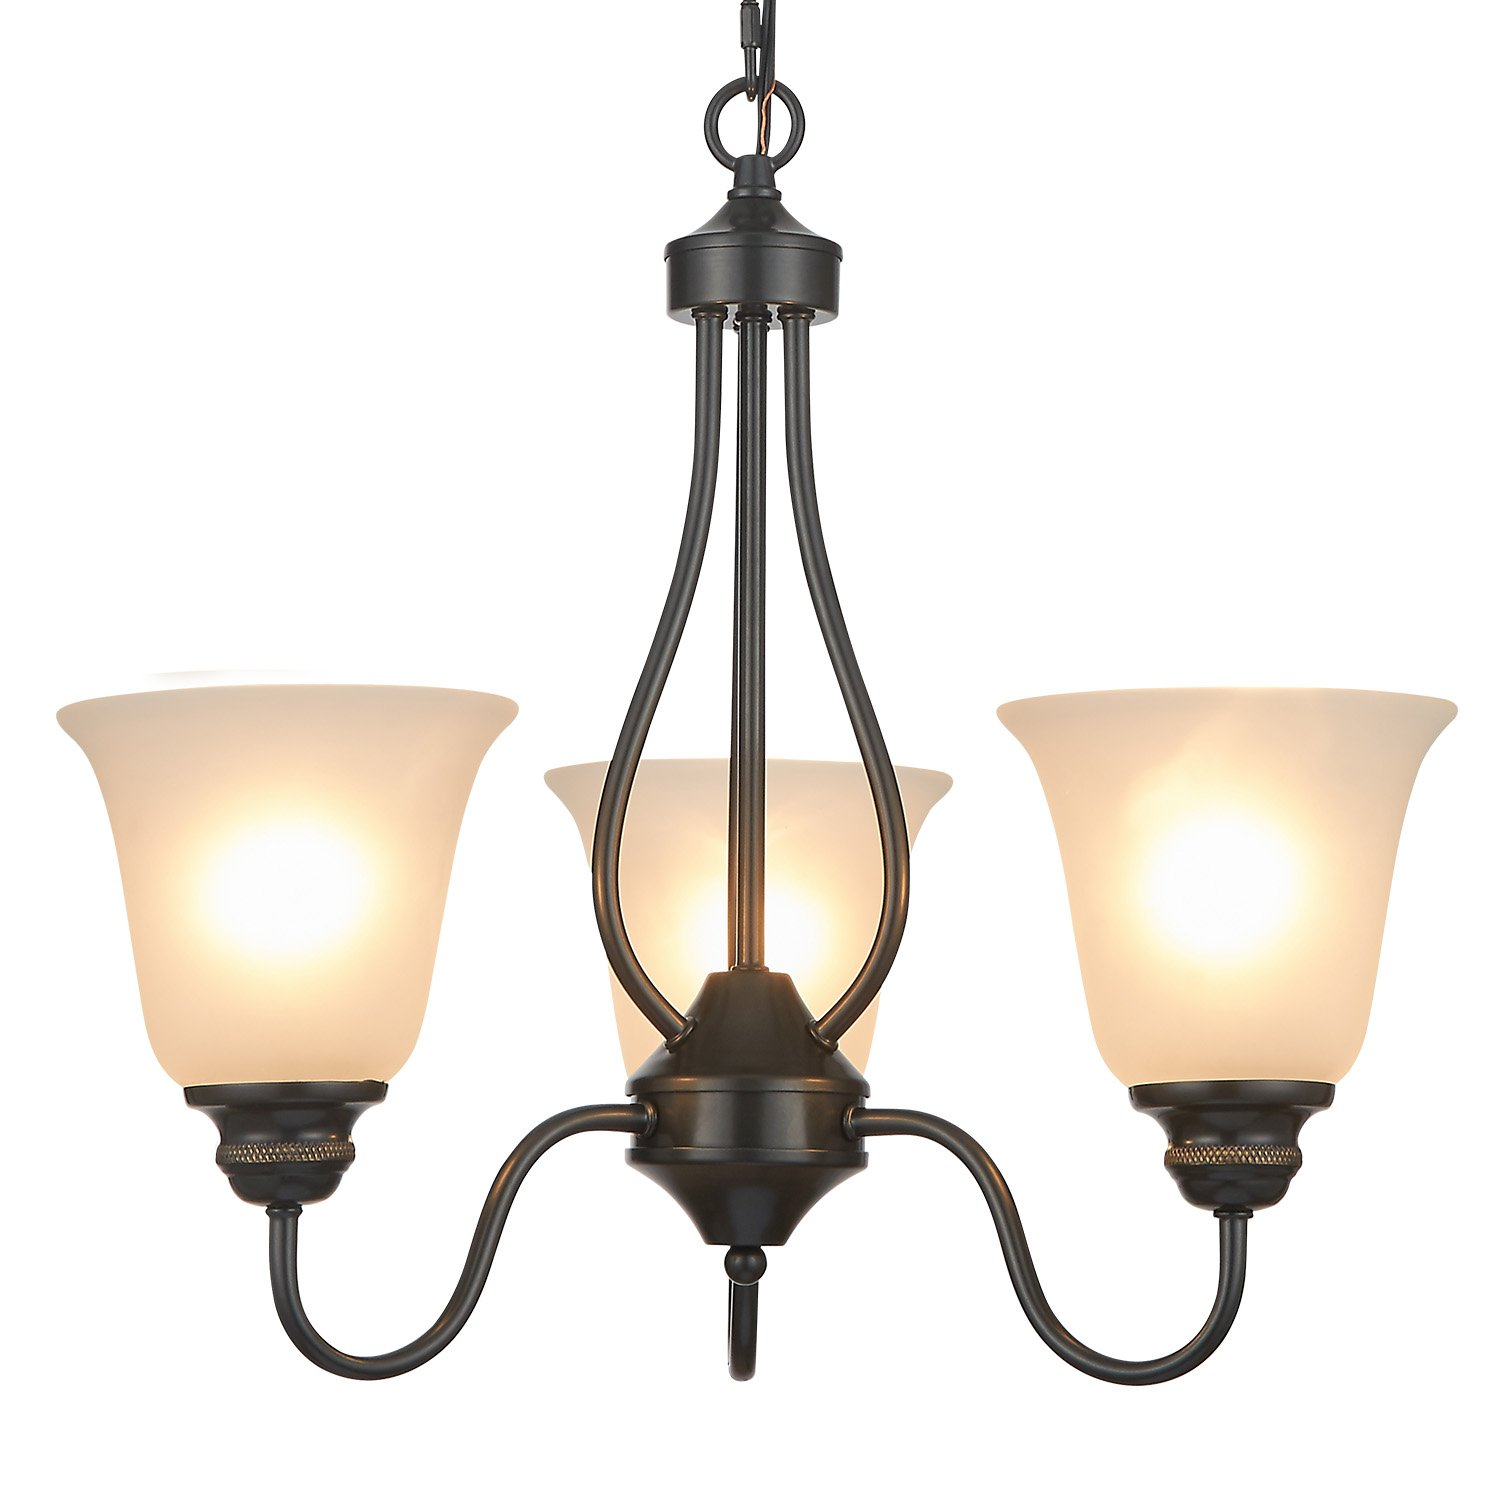 Doraimi 3/5 Light Chandelier Lighting Traditional Ceiling Light Fixture with Satin Etched Cased Opal Glass Shade for Foyer, Dining Room, Living Room, Family Room (Black, 3 Light)